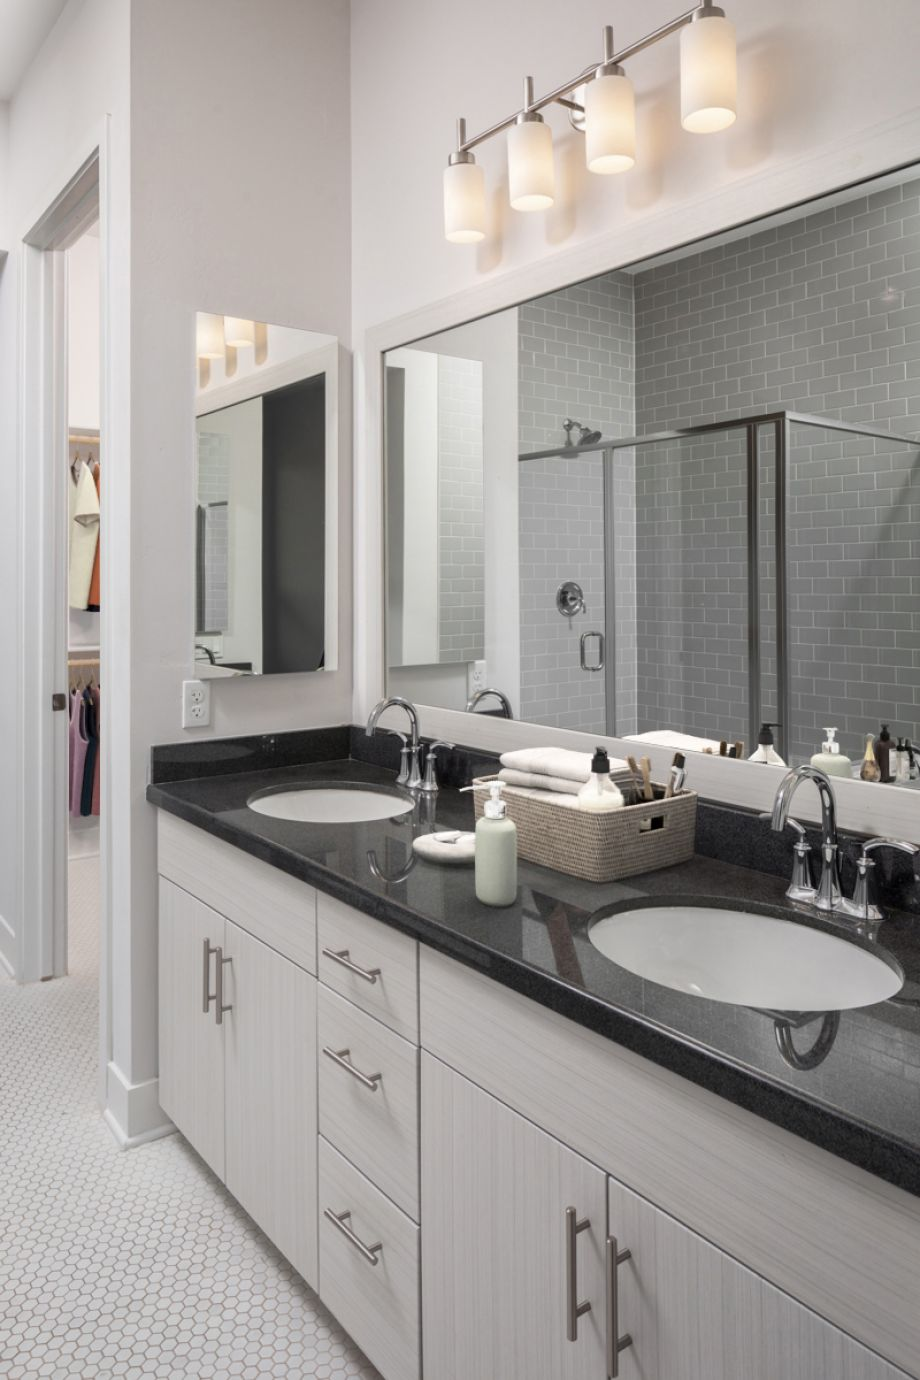 Penthouse Double Vanity Sink at Camden Old Town Scottsdale Apartments in Scottsdale, Arizona